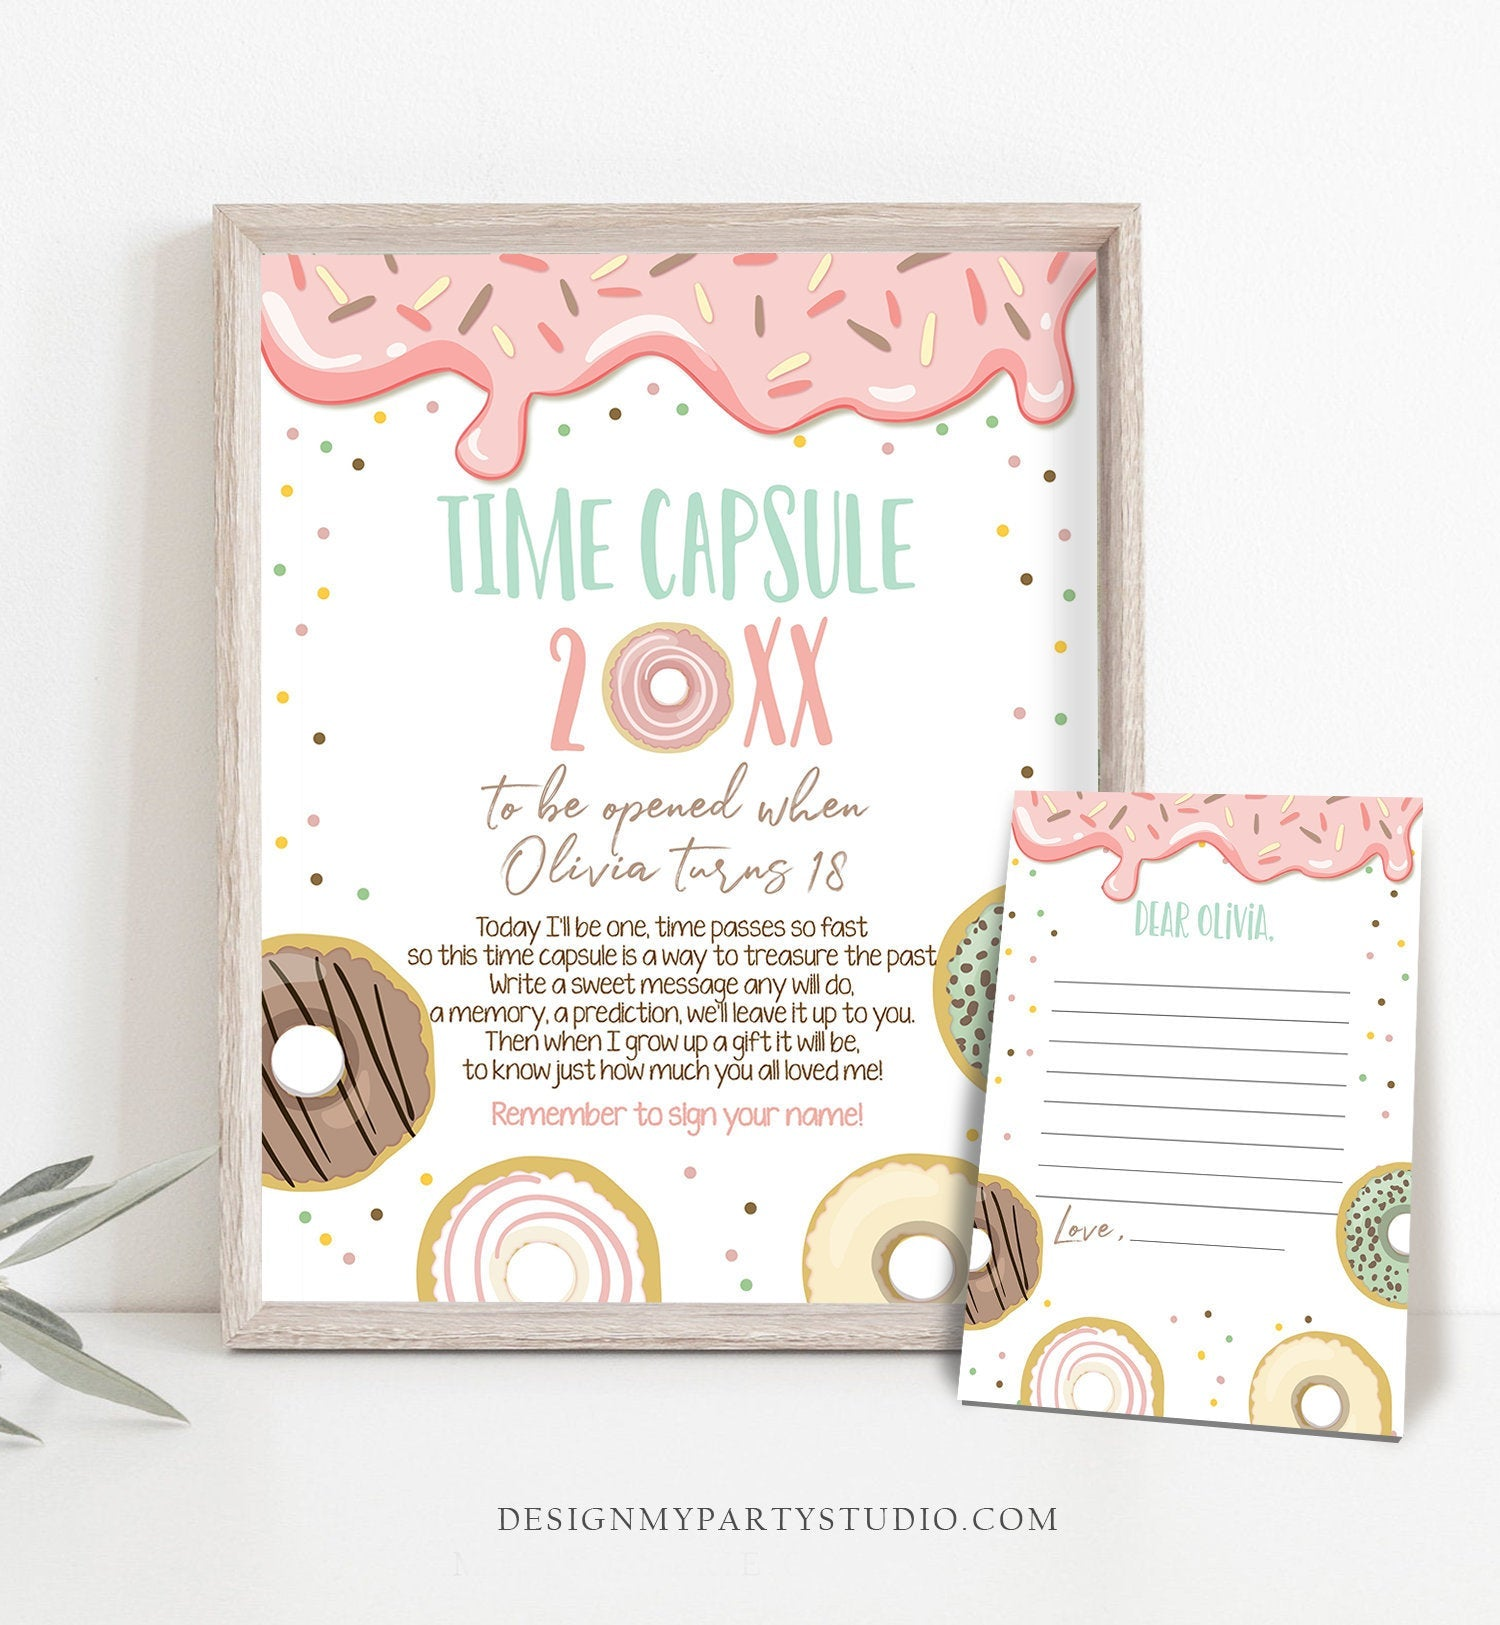 Editable Donut Time Capsule First Birthday Party Donut Birthday Donut Decor Doughnut Donut Party Girl Pink Template Printable Corjl 0320